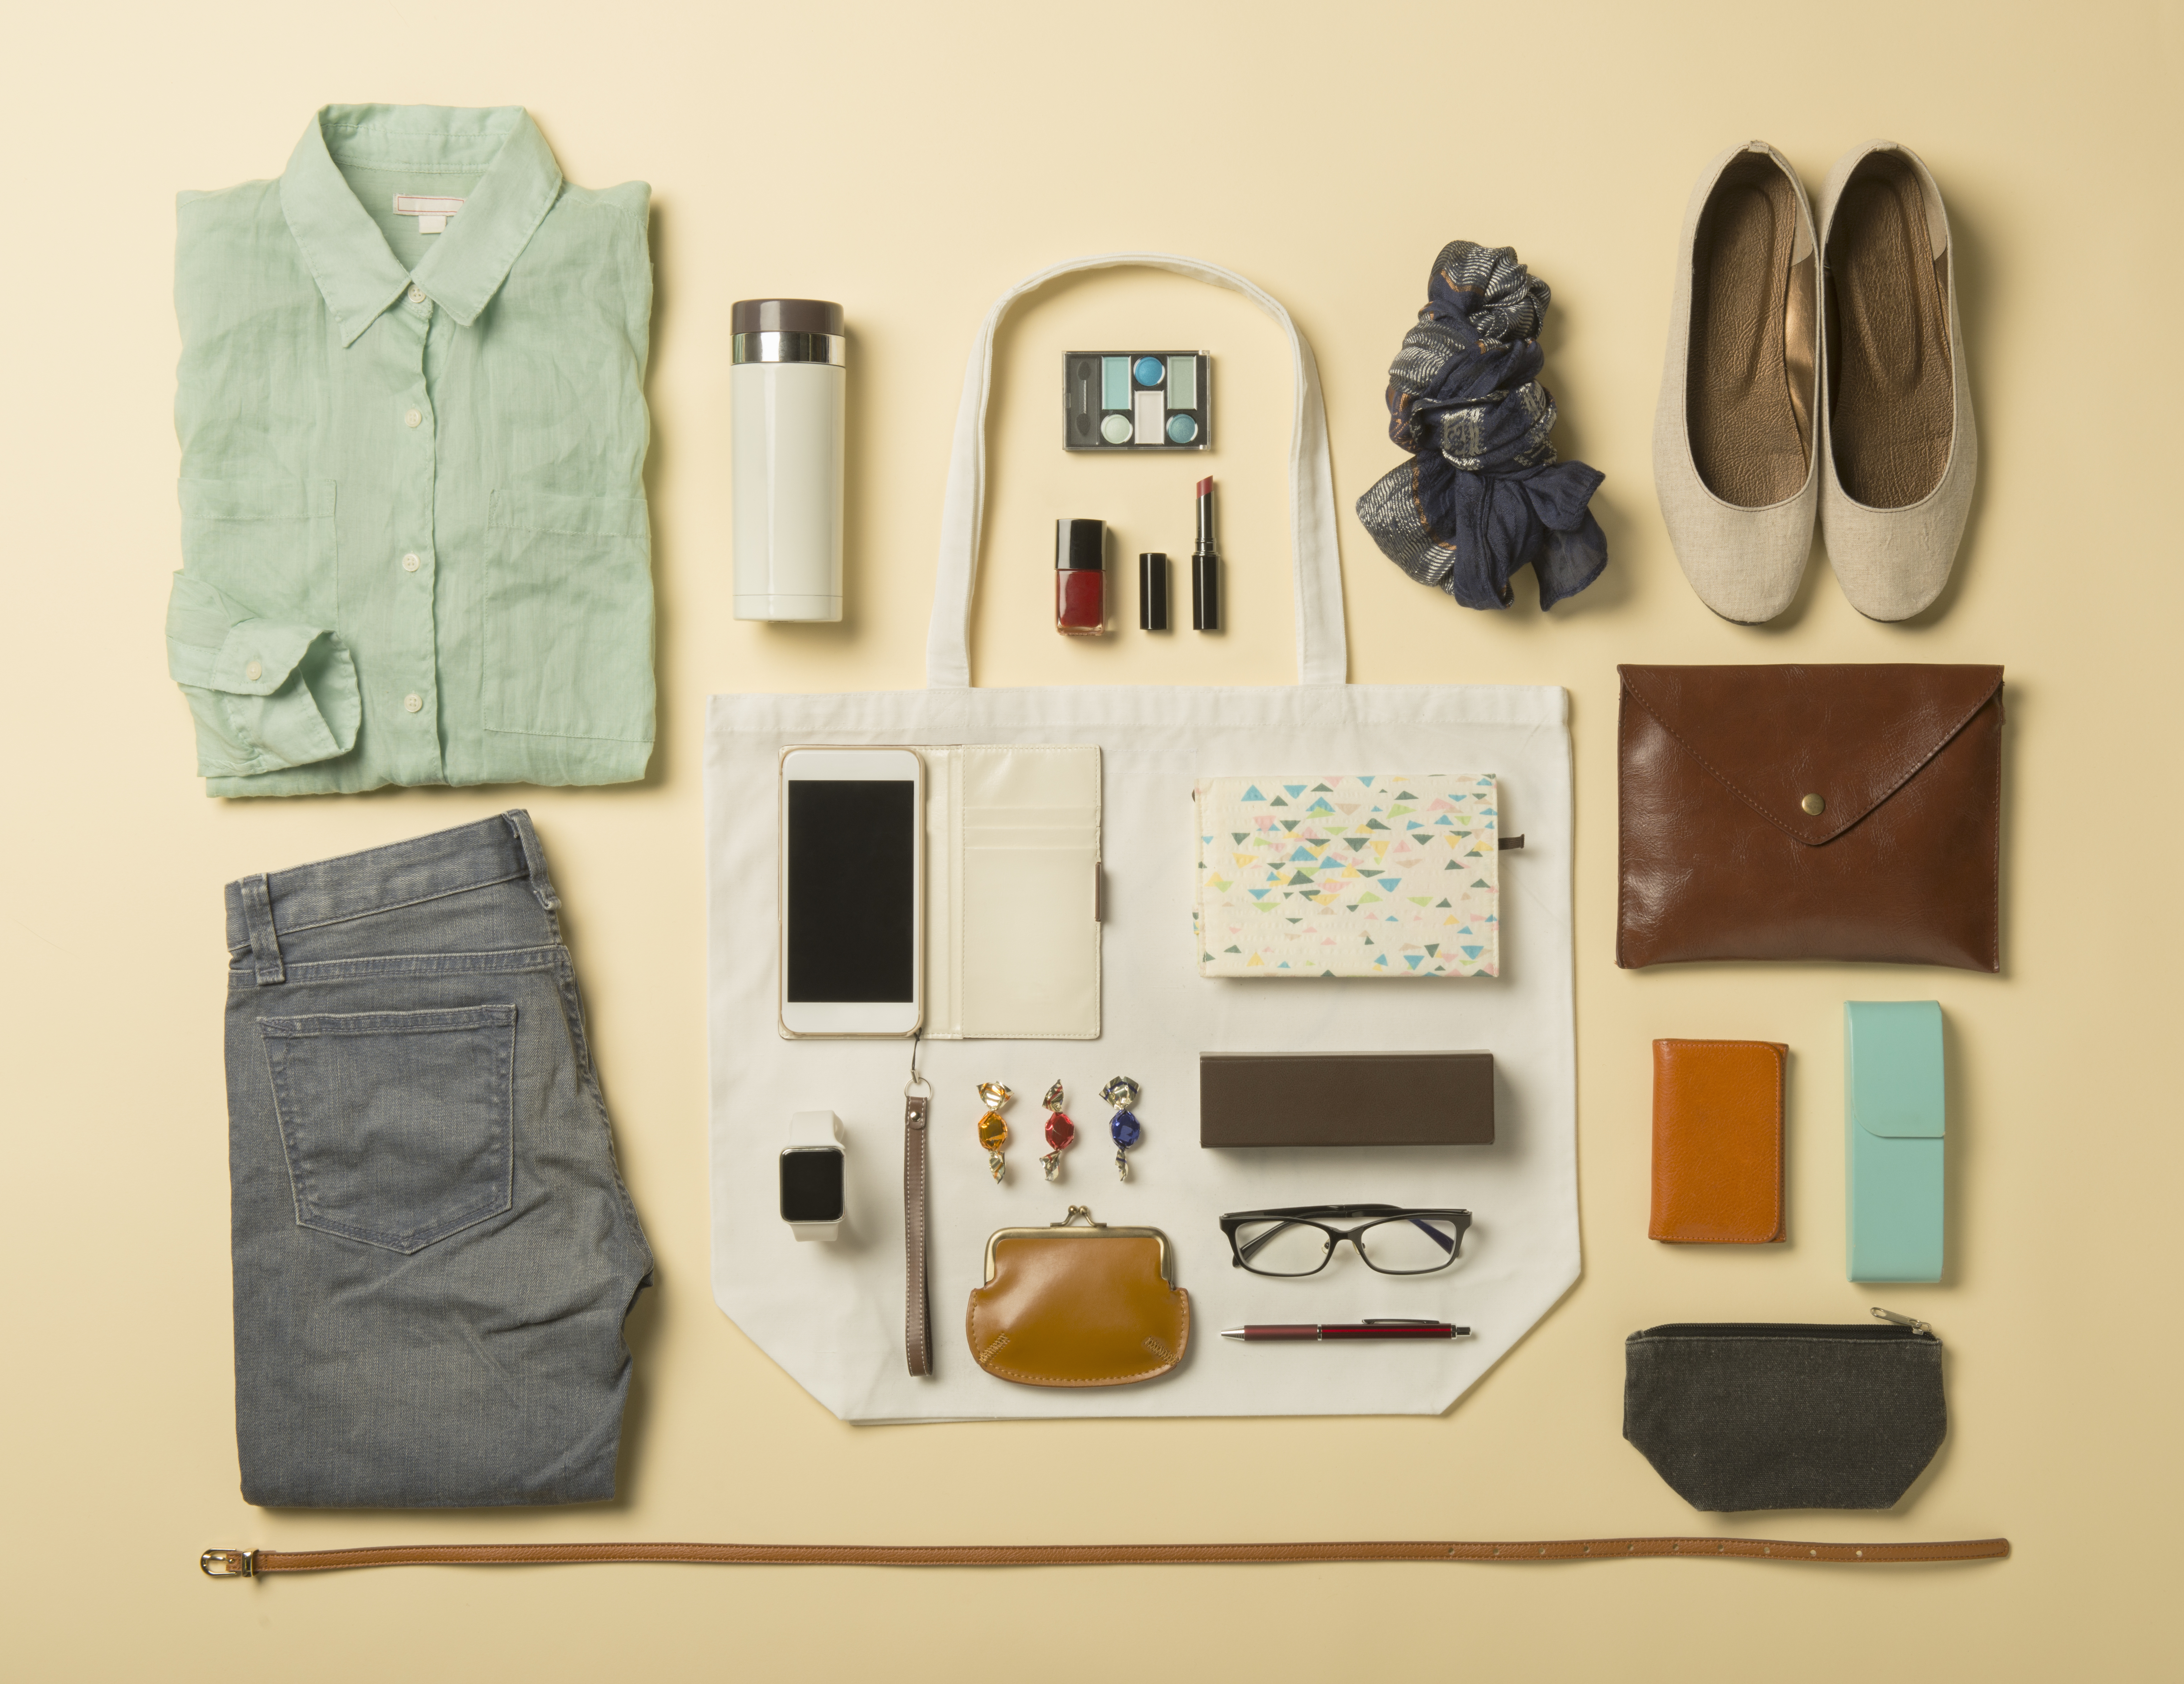 Woman daily supplies shot knolling style.